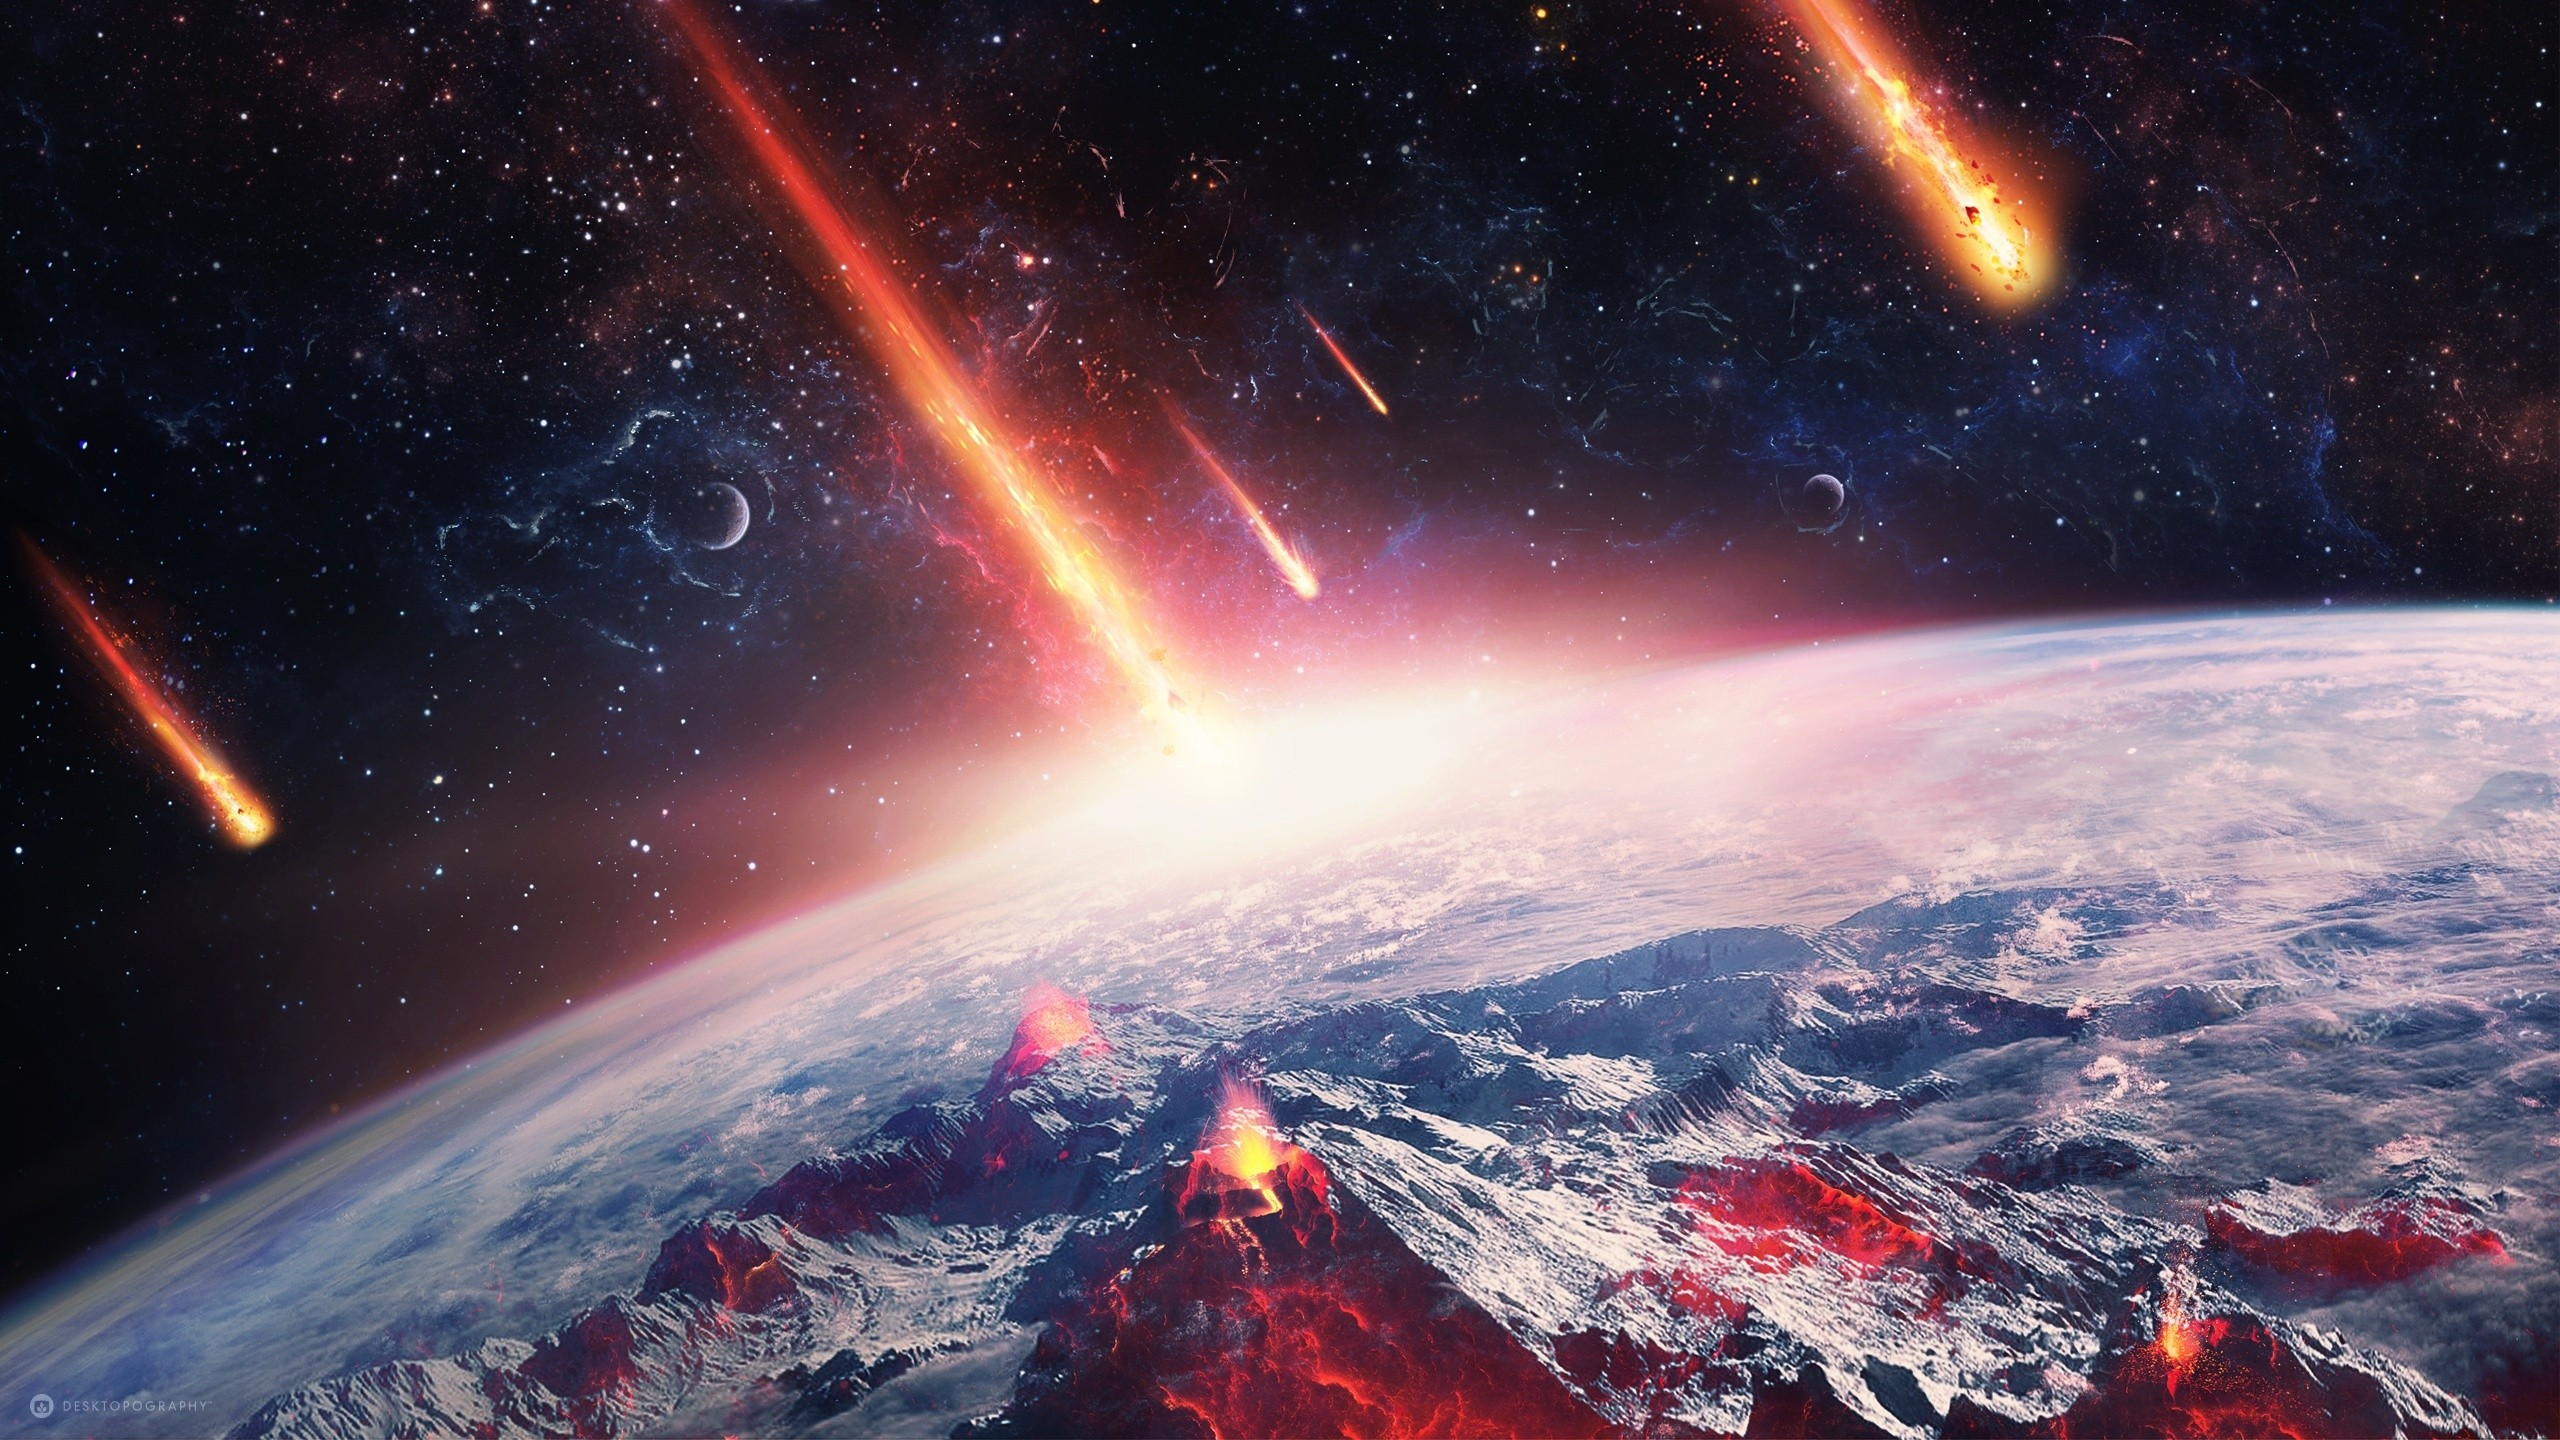 Earth 3d Wallpaper Android Earth Meteors Hd Digital Universe 4k Wallpapers Images